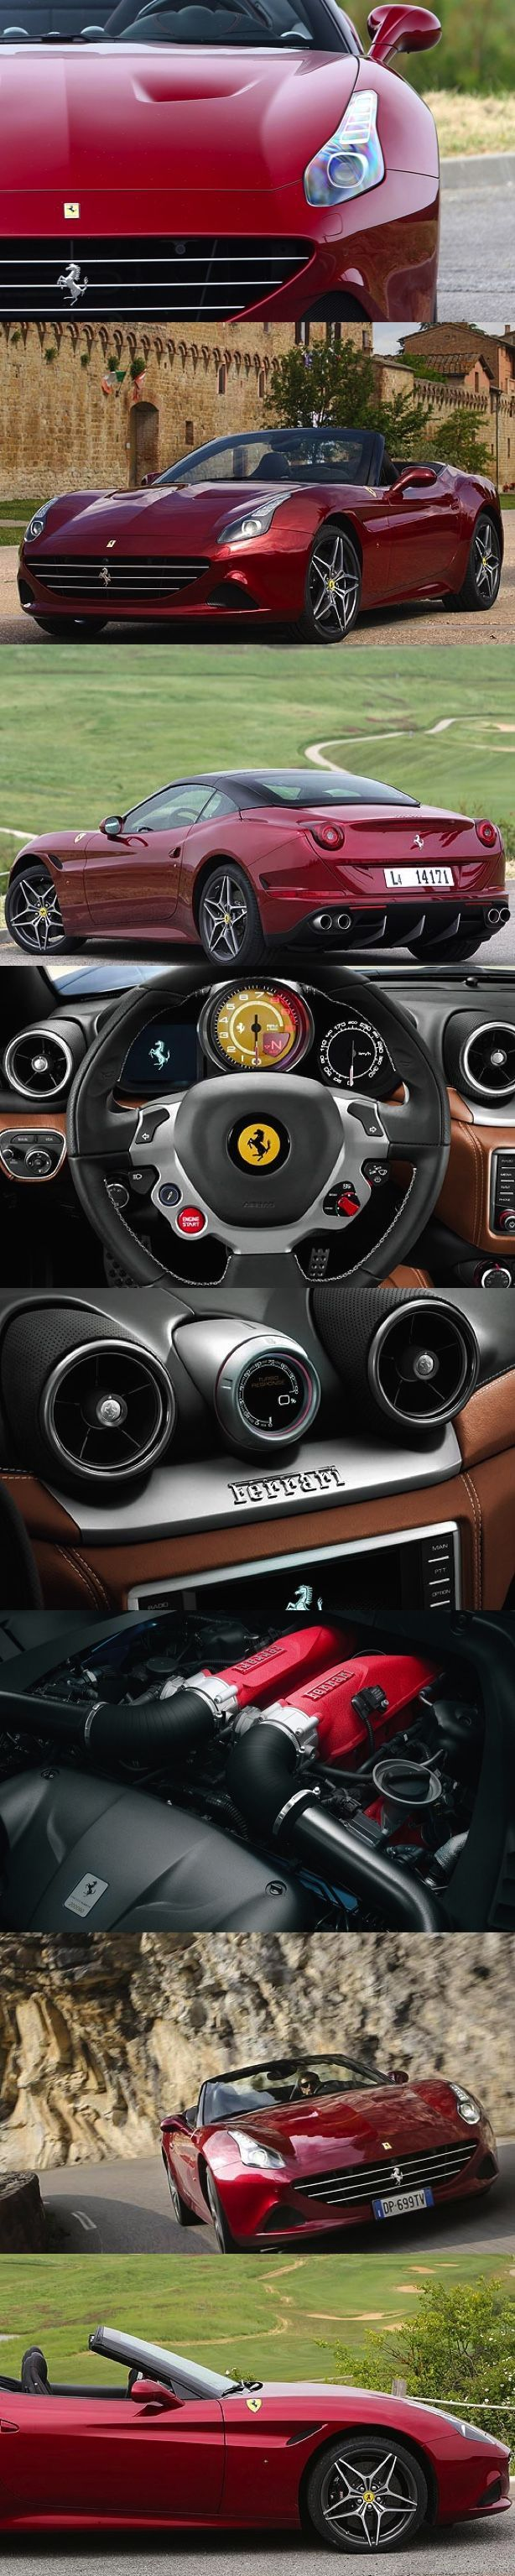 On the road in the #Ferrari California T by Tim Barnes-Clay. Sliding behind the wheel of your most prized possession never fails to take you to seventh heaven. The scent of your #Ferrari almost intoxicates you as you wrap your hands around the leather clad steering wheel. You appreciate that the marque represents the essence of exotic ultra-sportiness; but you recognise it goes deeper than that ... #Ferrari #Supercar #CarReview #Luxury #Sportscars